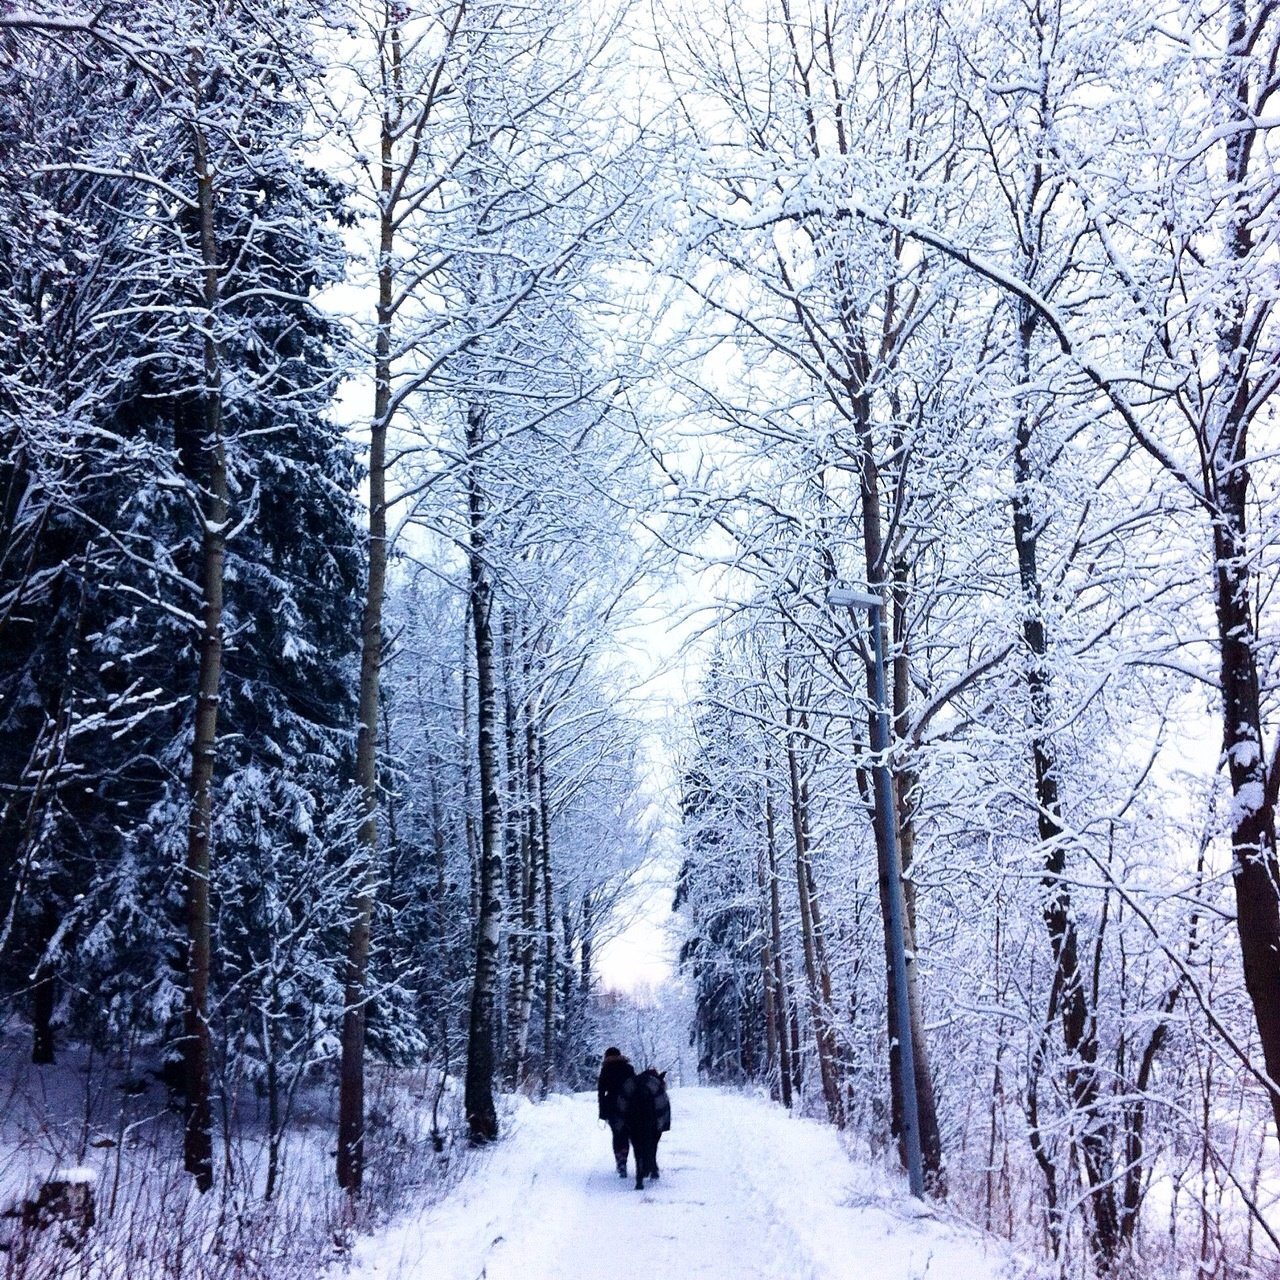 Snowy wood photo with 2 men walking